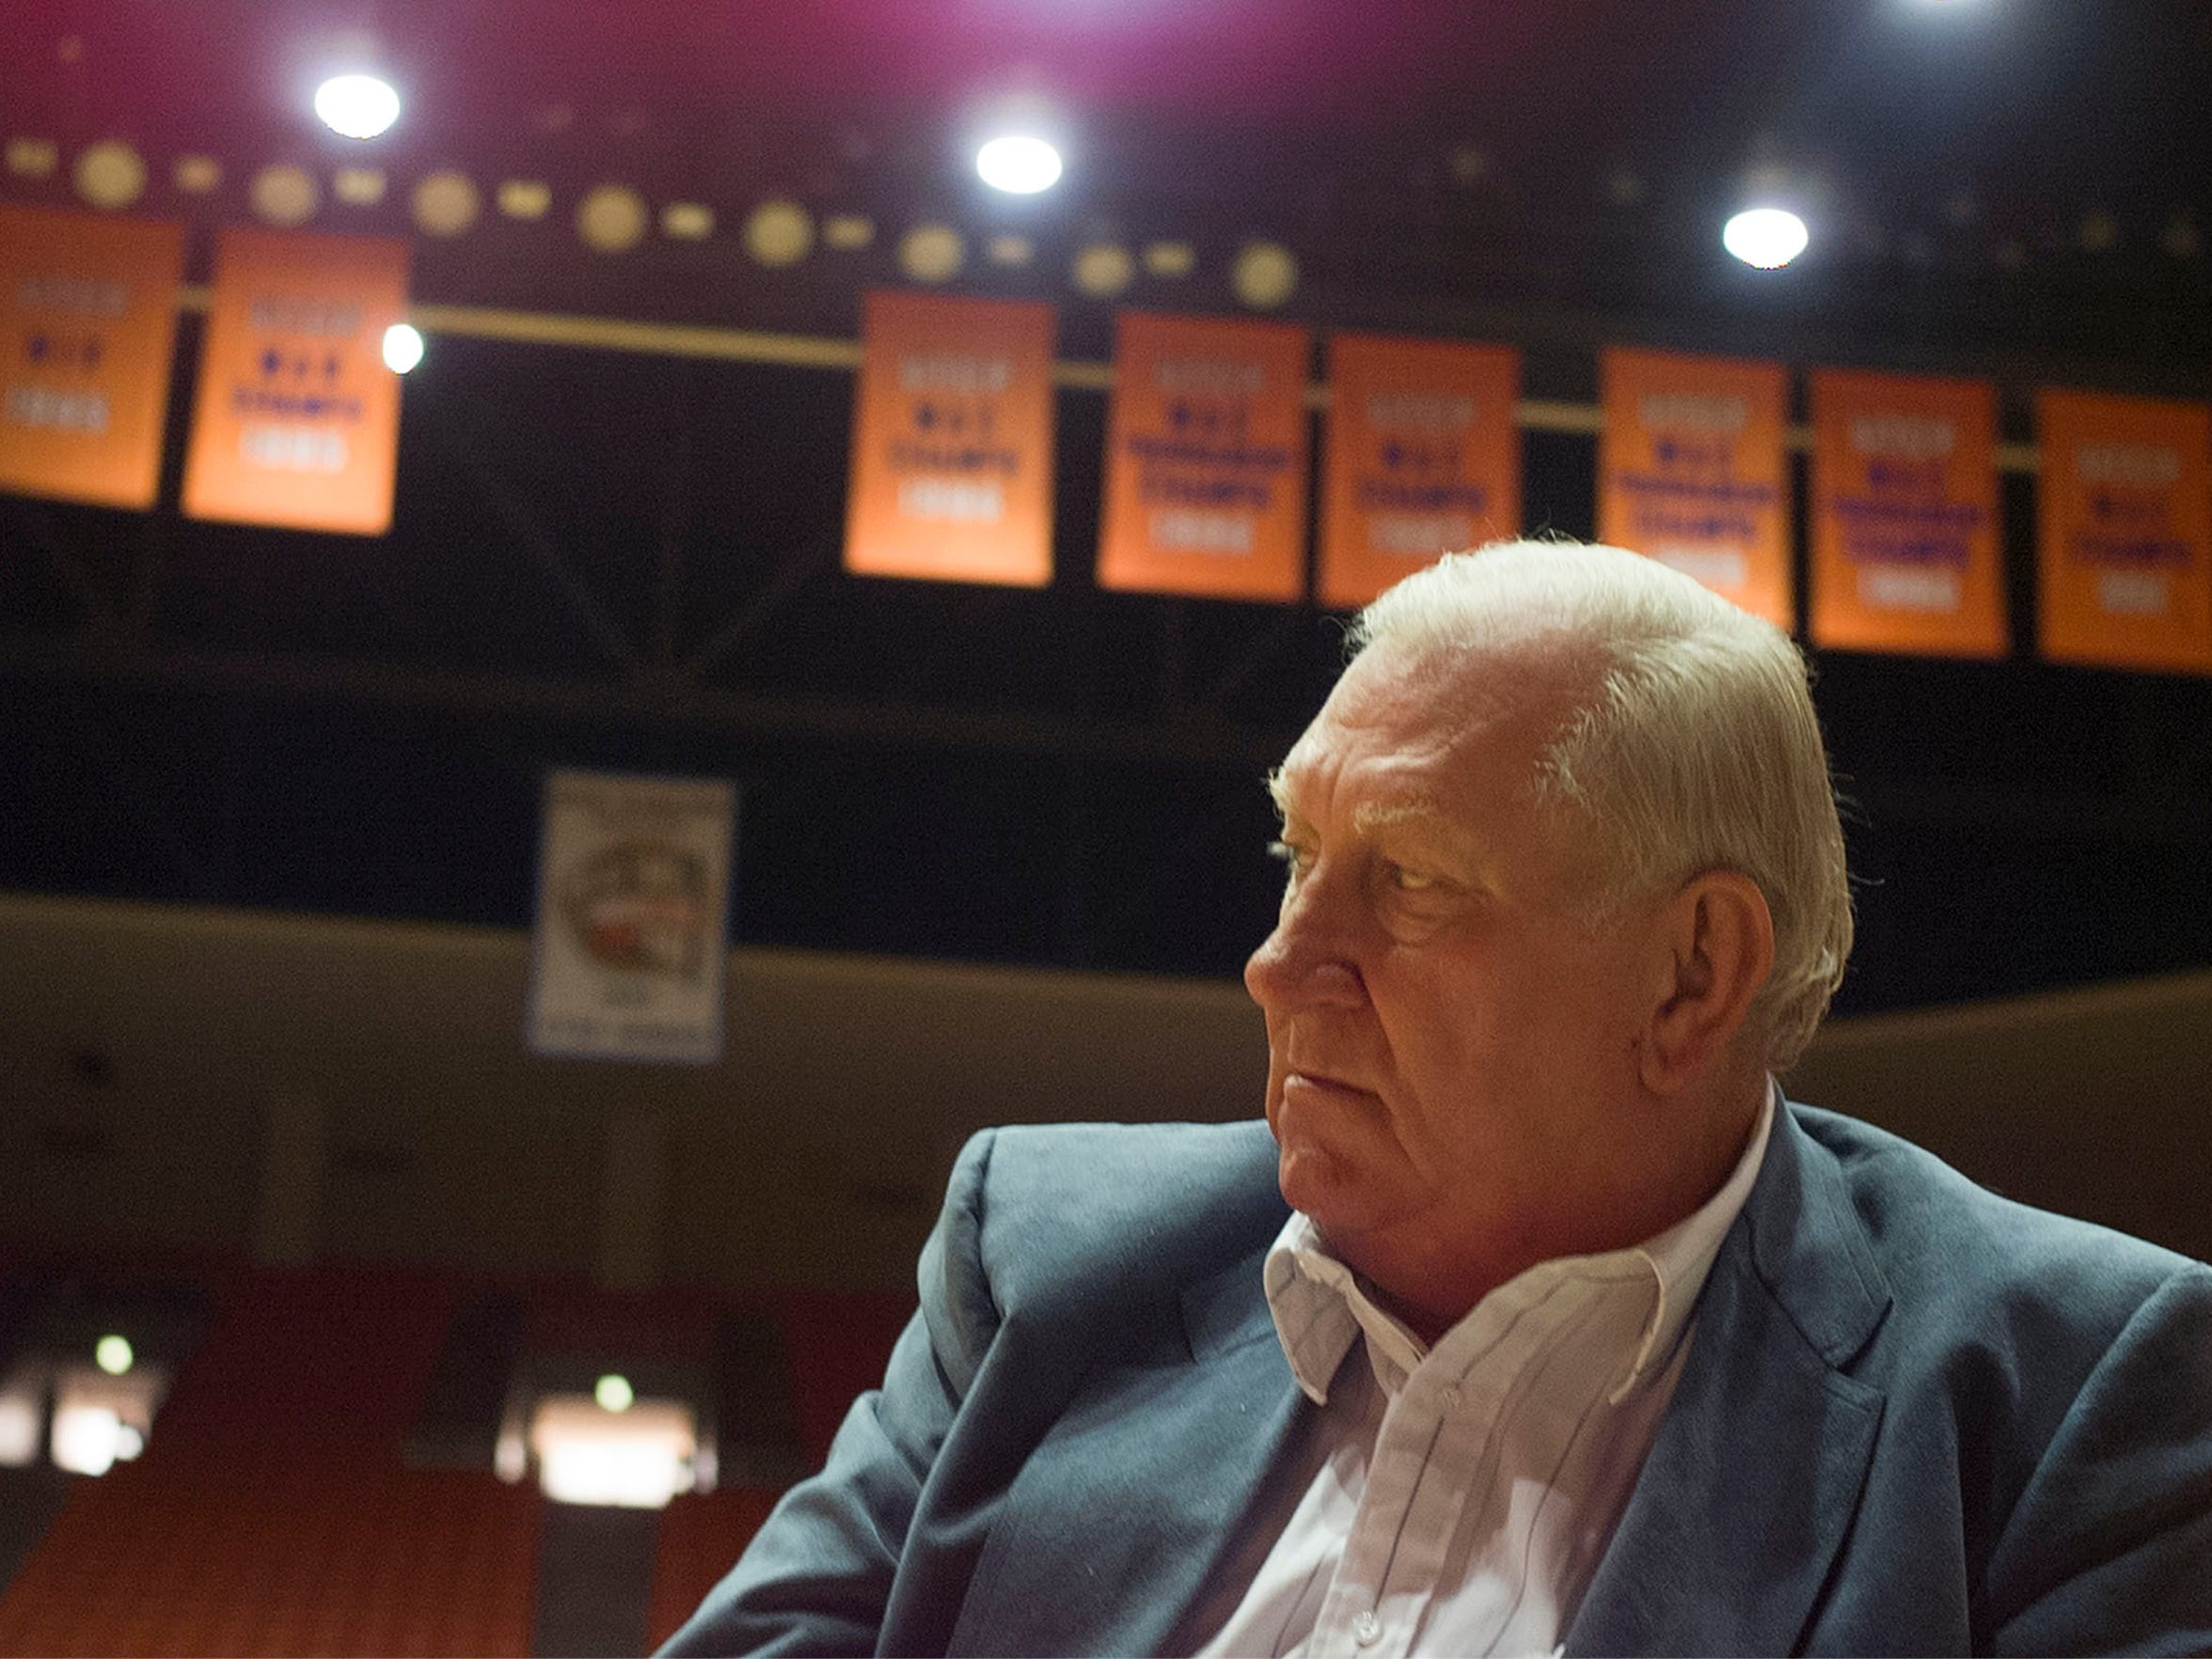 Former UTEP basketball coach, Don Haskins, waited to be interviewed by television reporters in the Don Haskins Center. Haskins announced his retirement after 38 years as head coach.